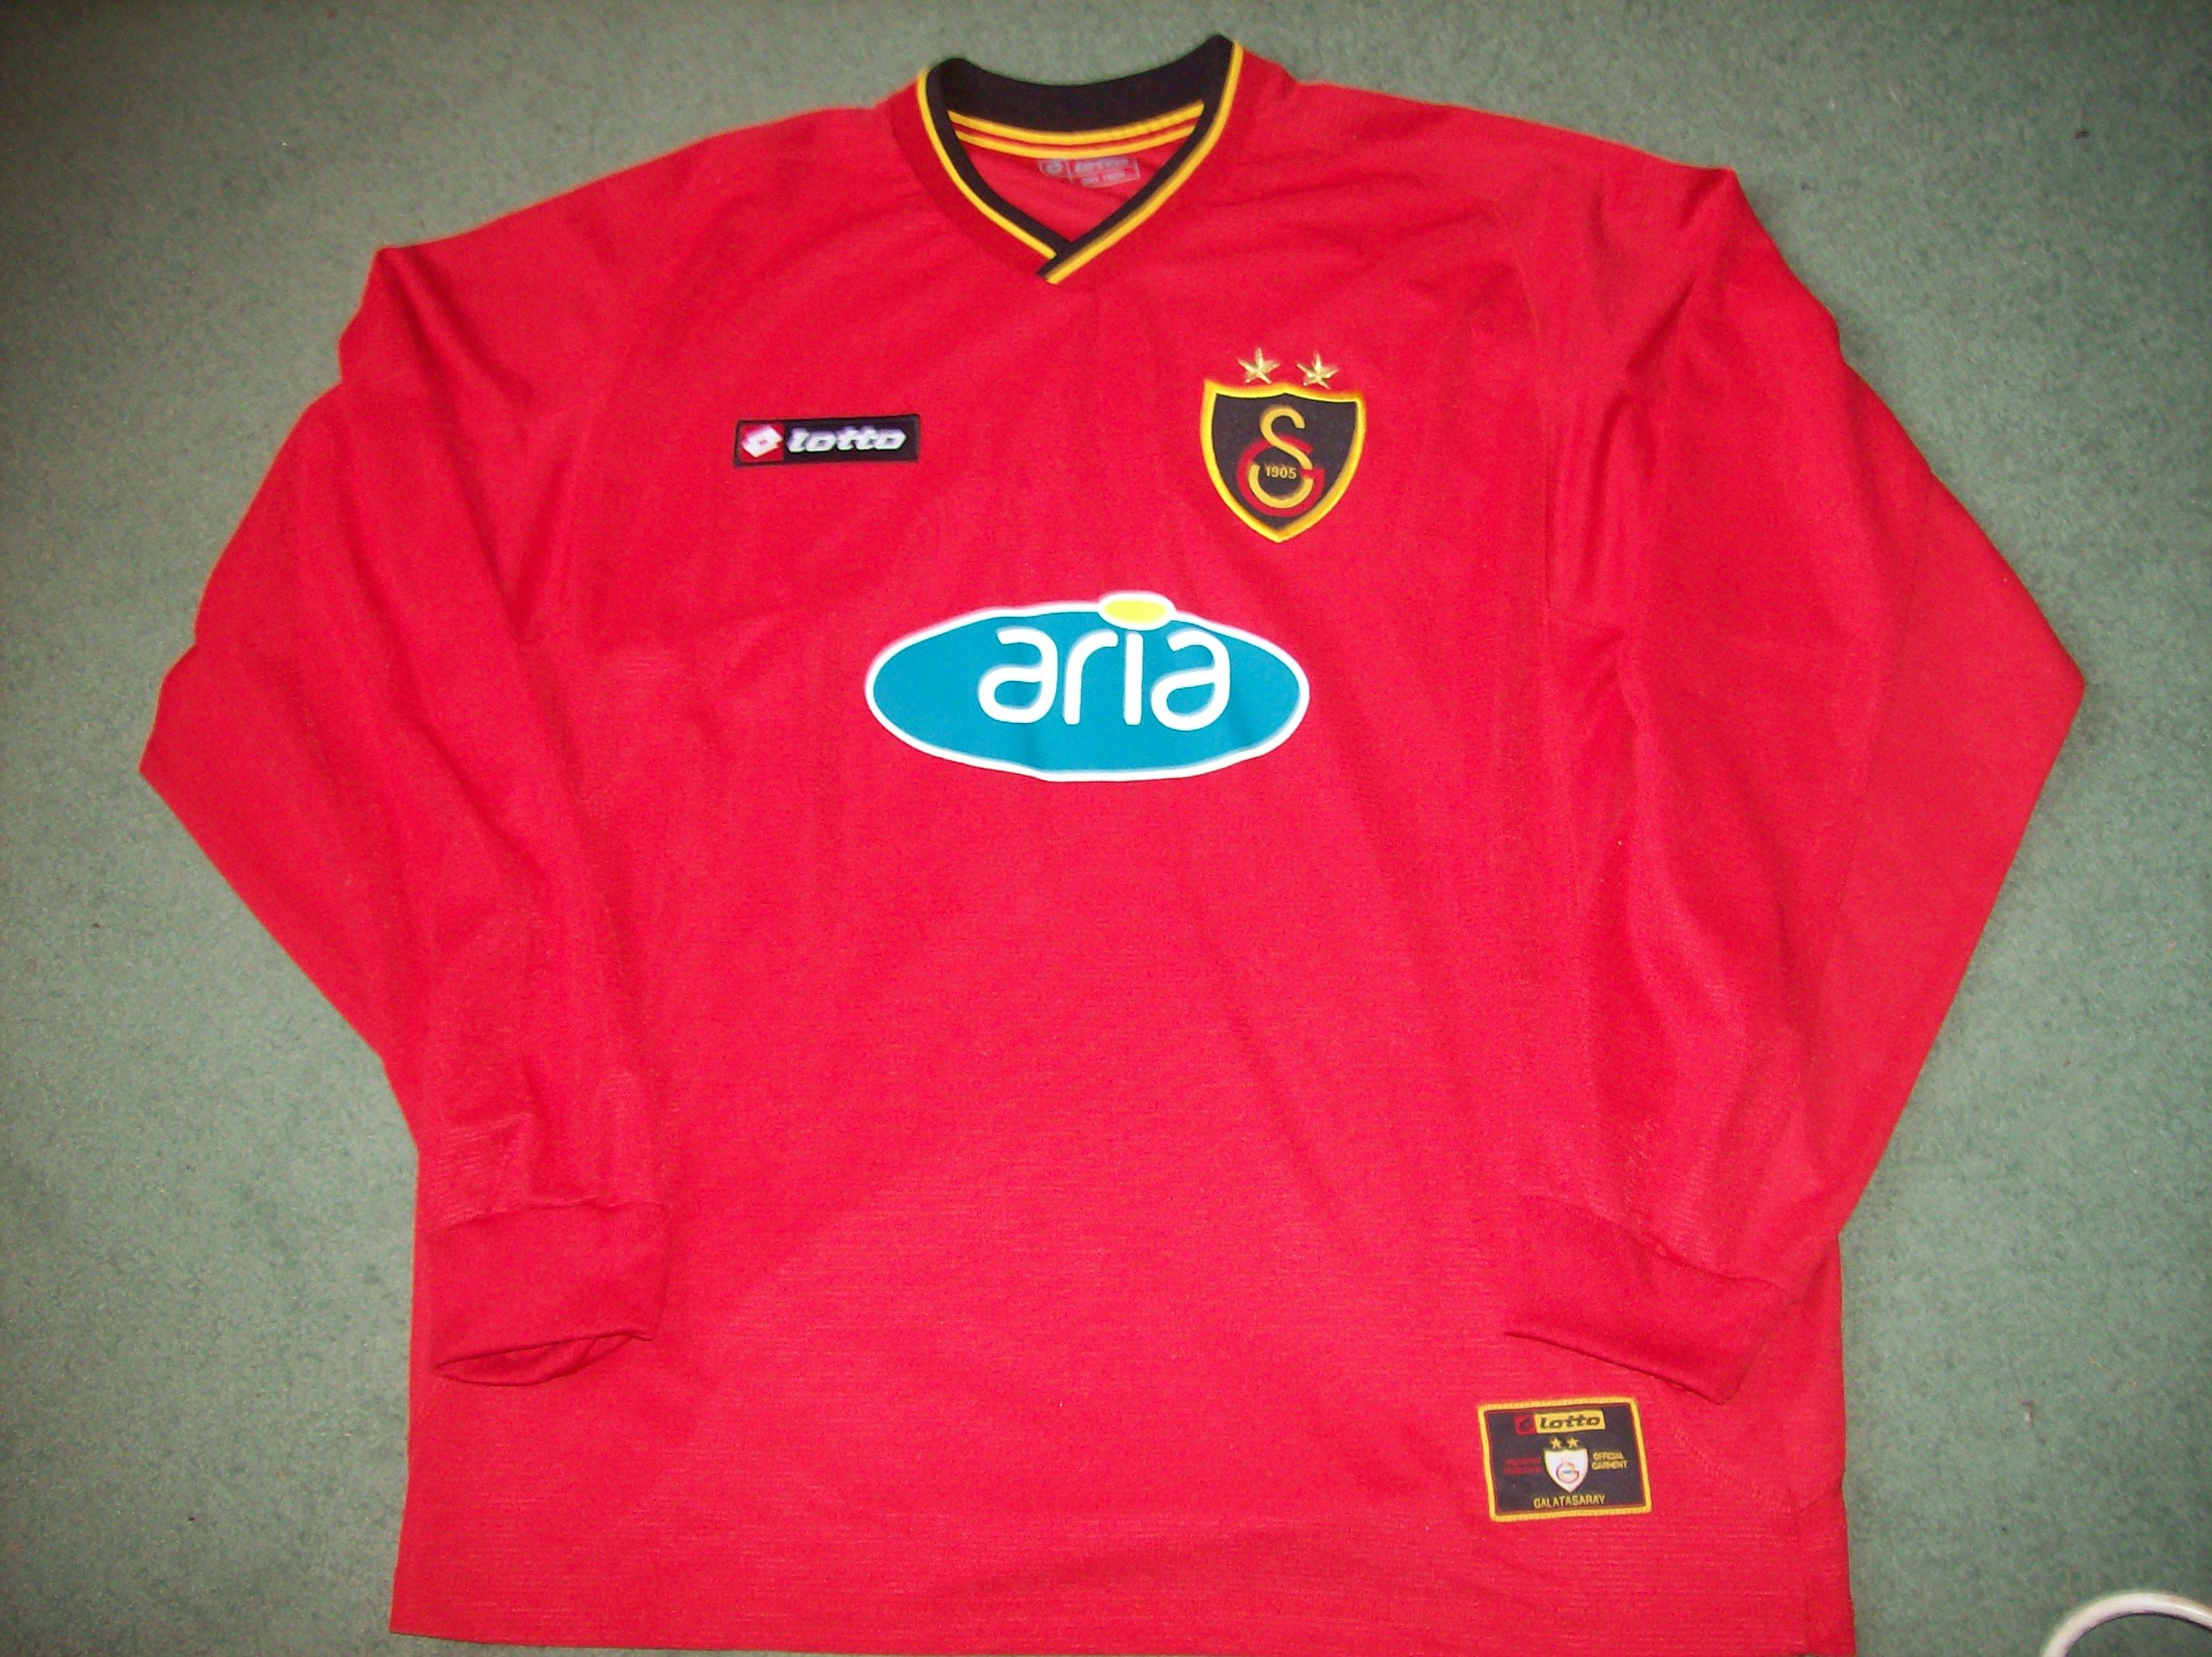 fa4eb7cd04d Galatasaray L s Away shirt from 2001 02 just listed  www.classicfootballshirtscouk.com Size XL Price £44.99